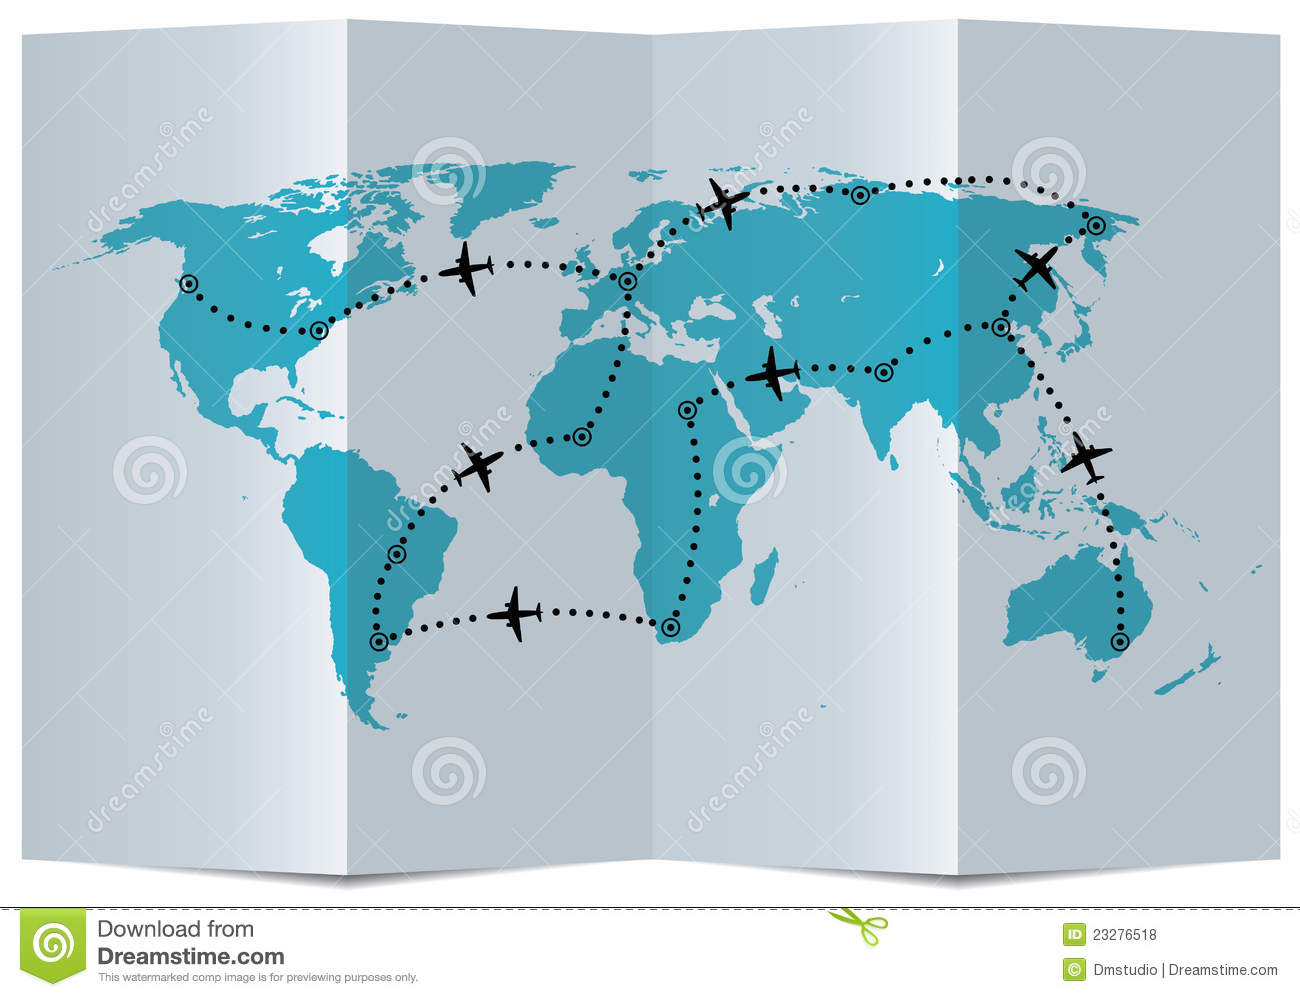 Vector Map With Airplane Flight Paths Royalty Free Stock Photos ...